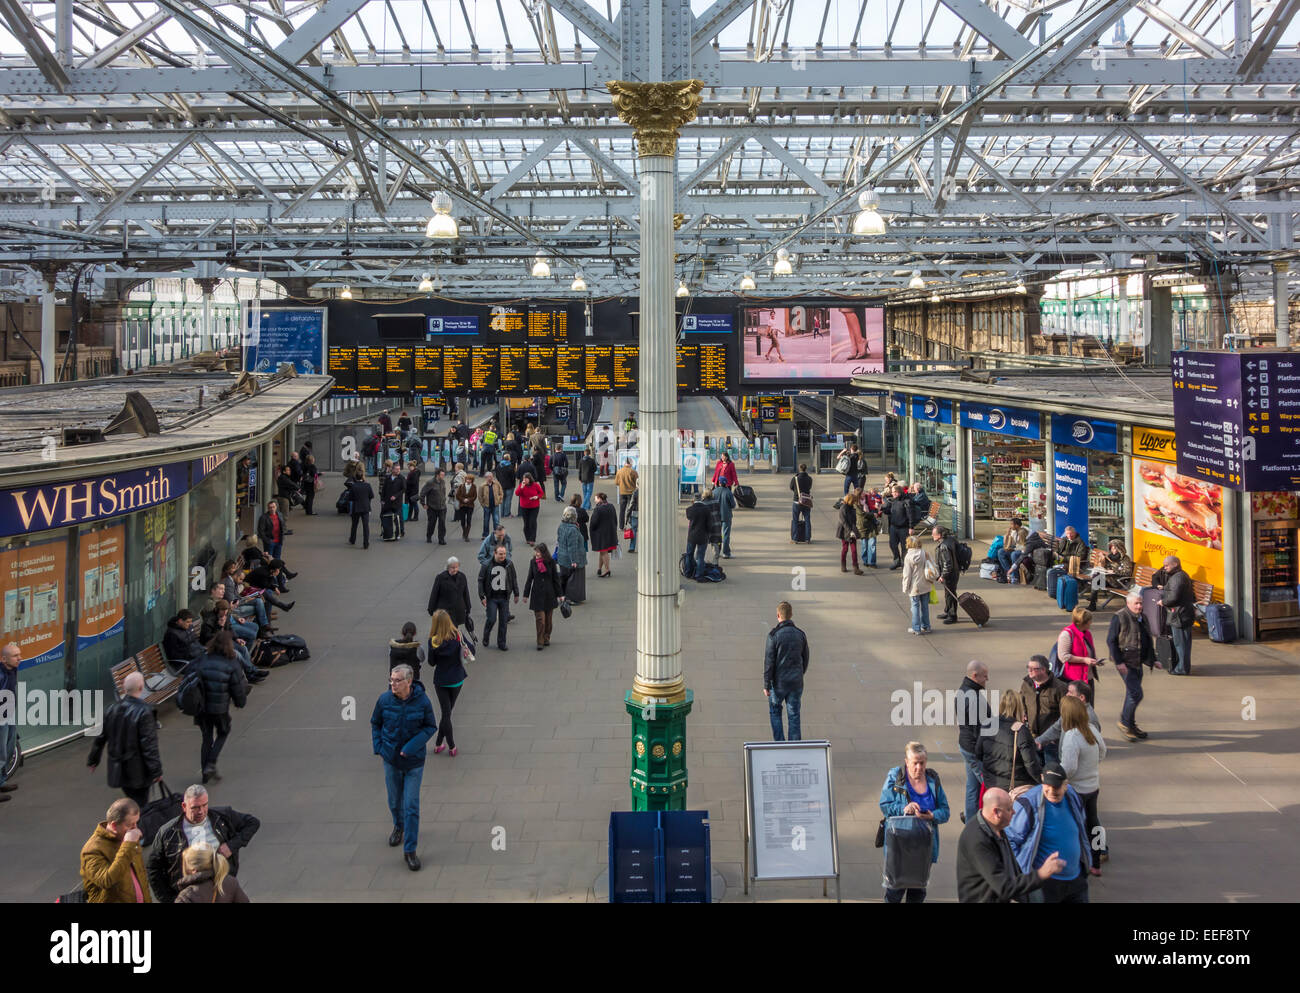 Concourse in Edinburgh Waverley Railway Station Edinburgh Scotland - Stock Image